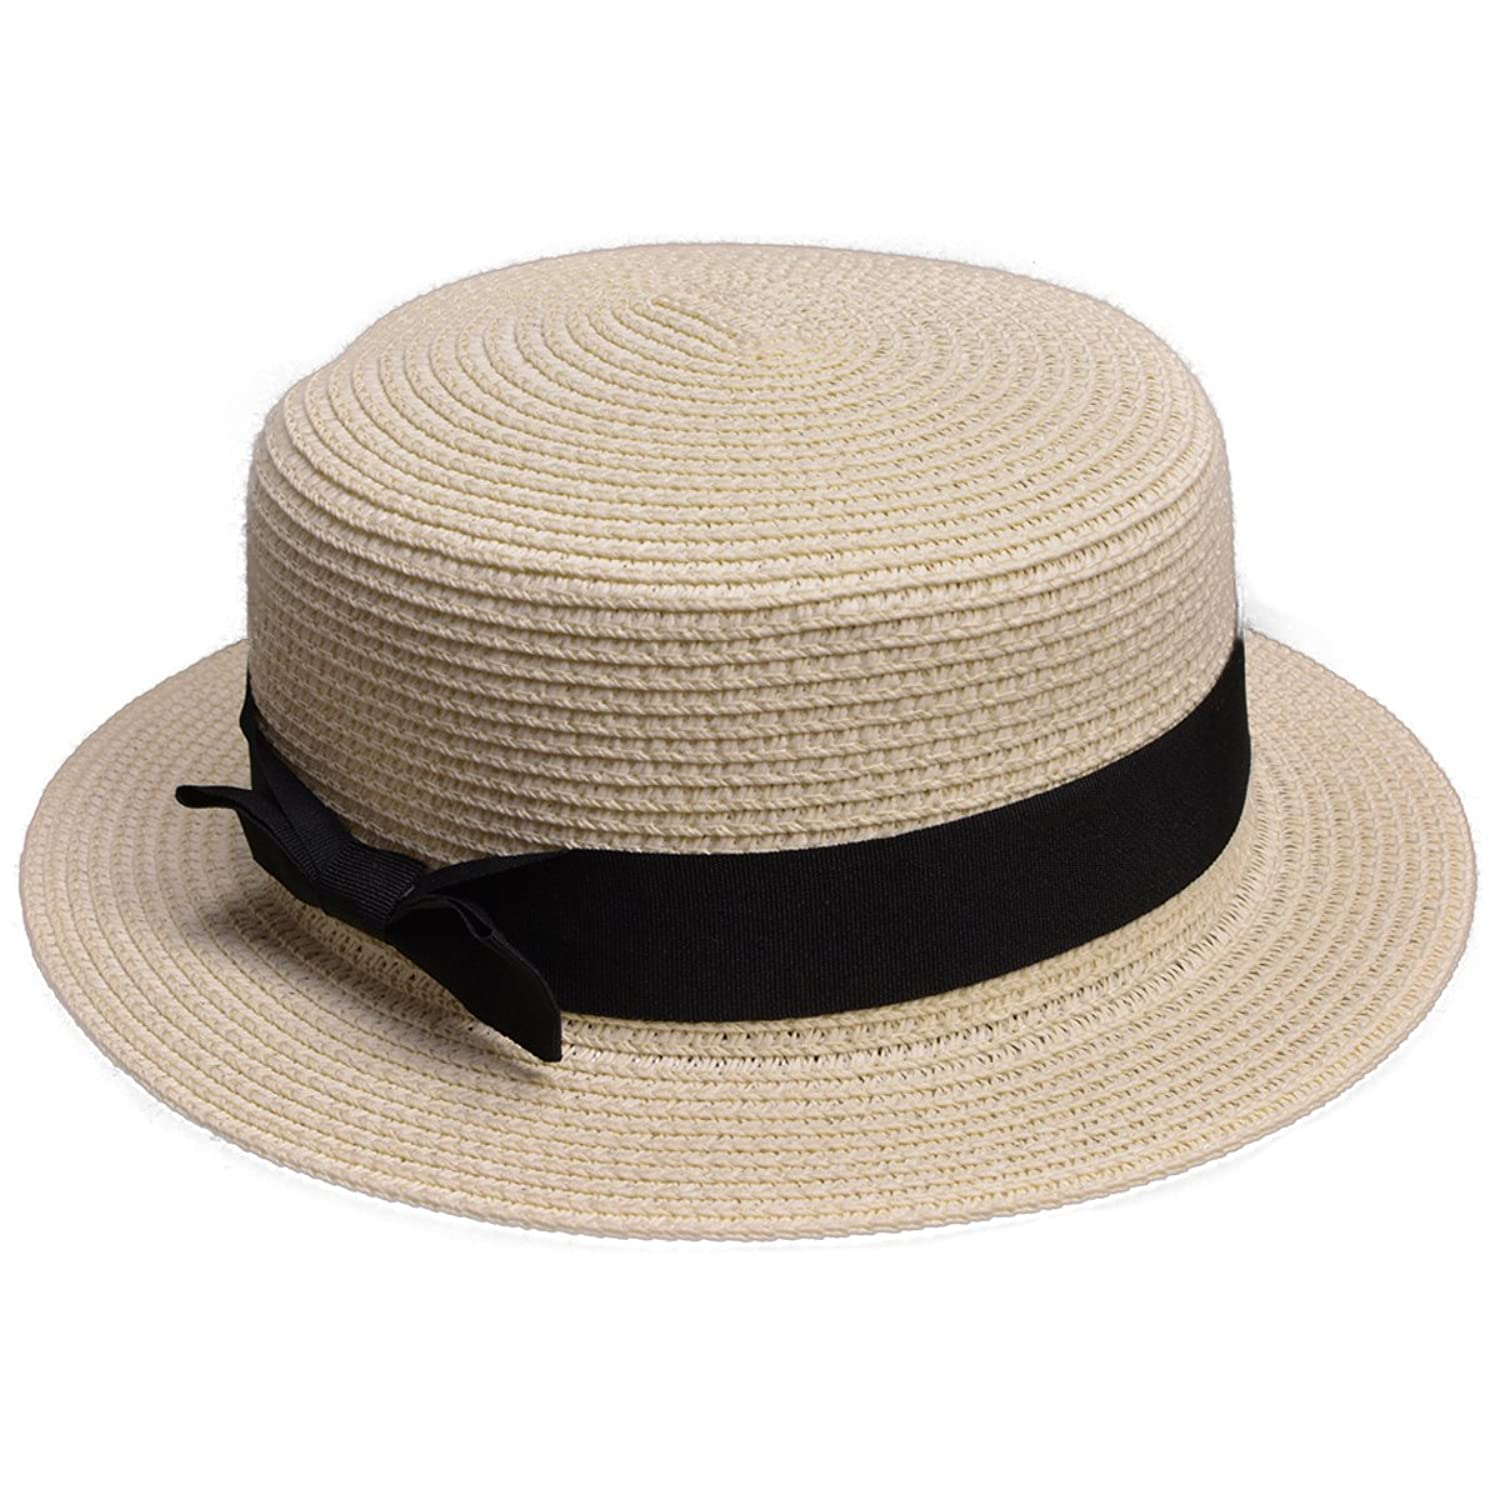 Tea Party Hats – Victorian to 1950s Lawliet Womens Straw Boater Hat Fedora Panama Flat Top Ribbon Summer A456 $10.99 AT vintagedancer.com